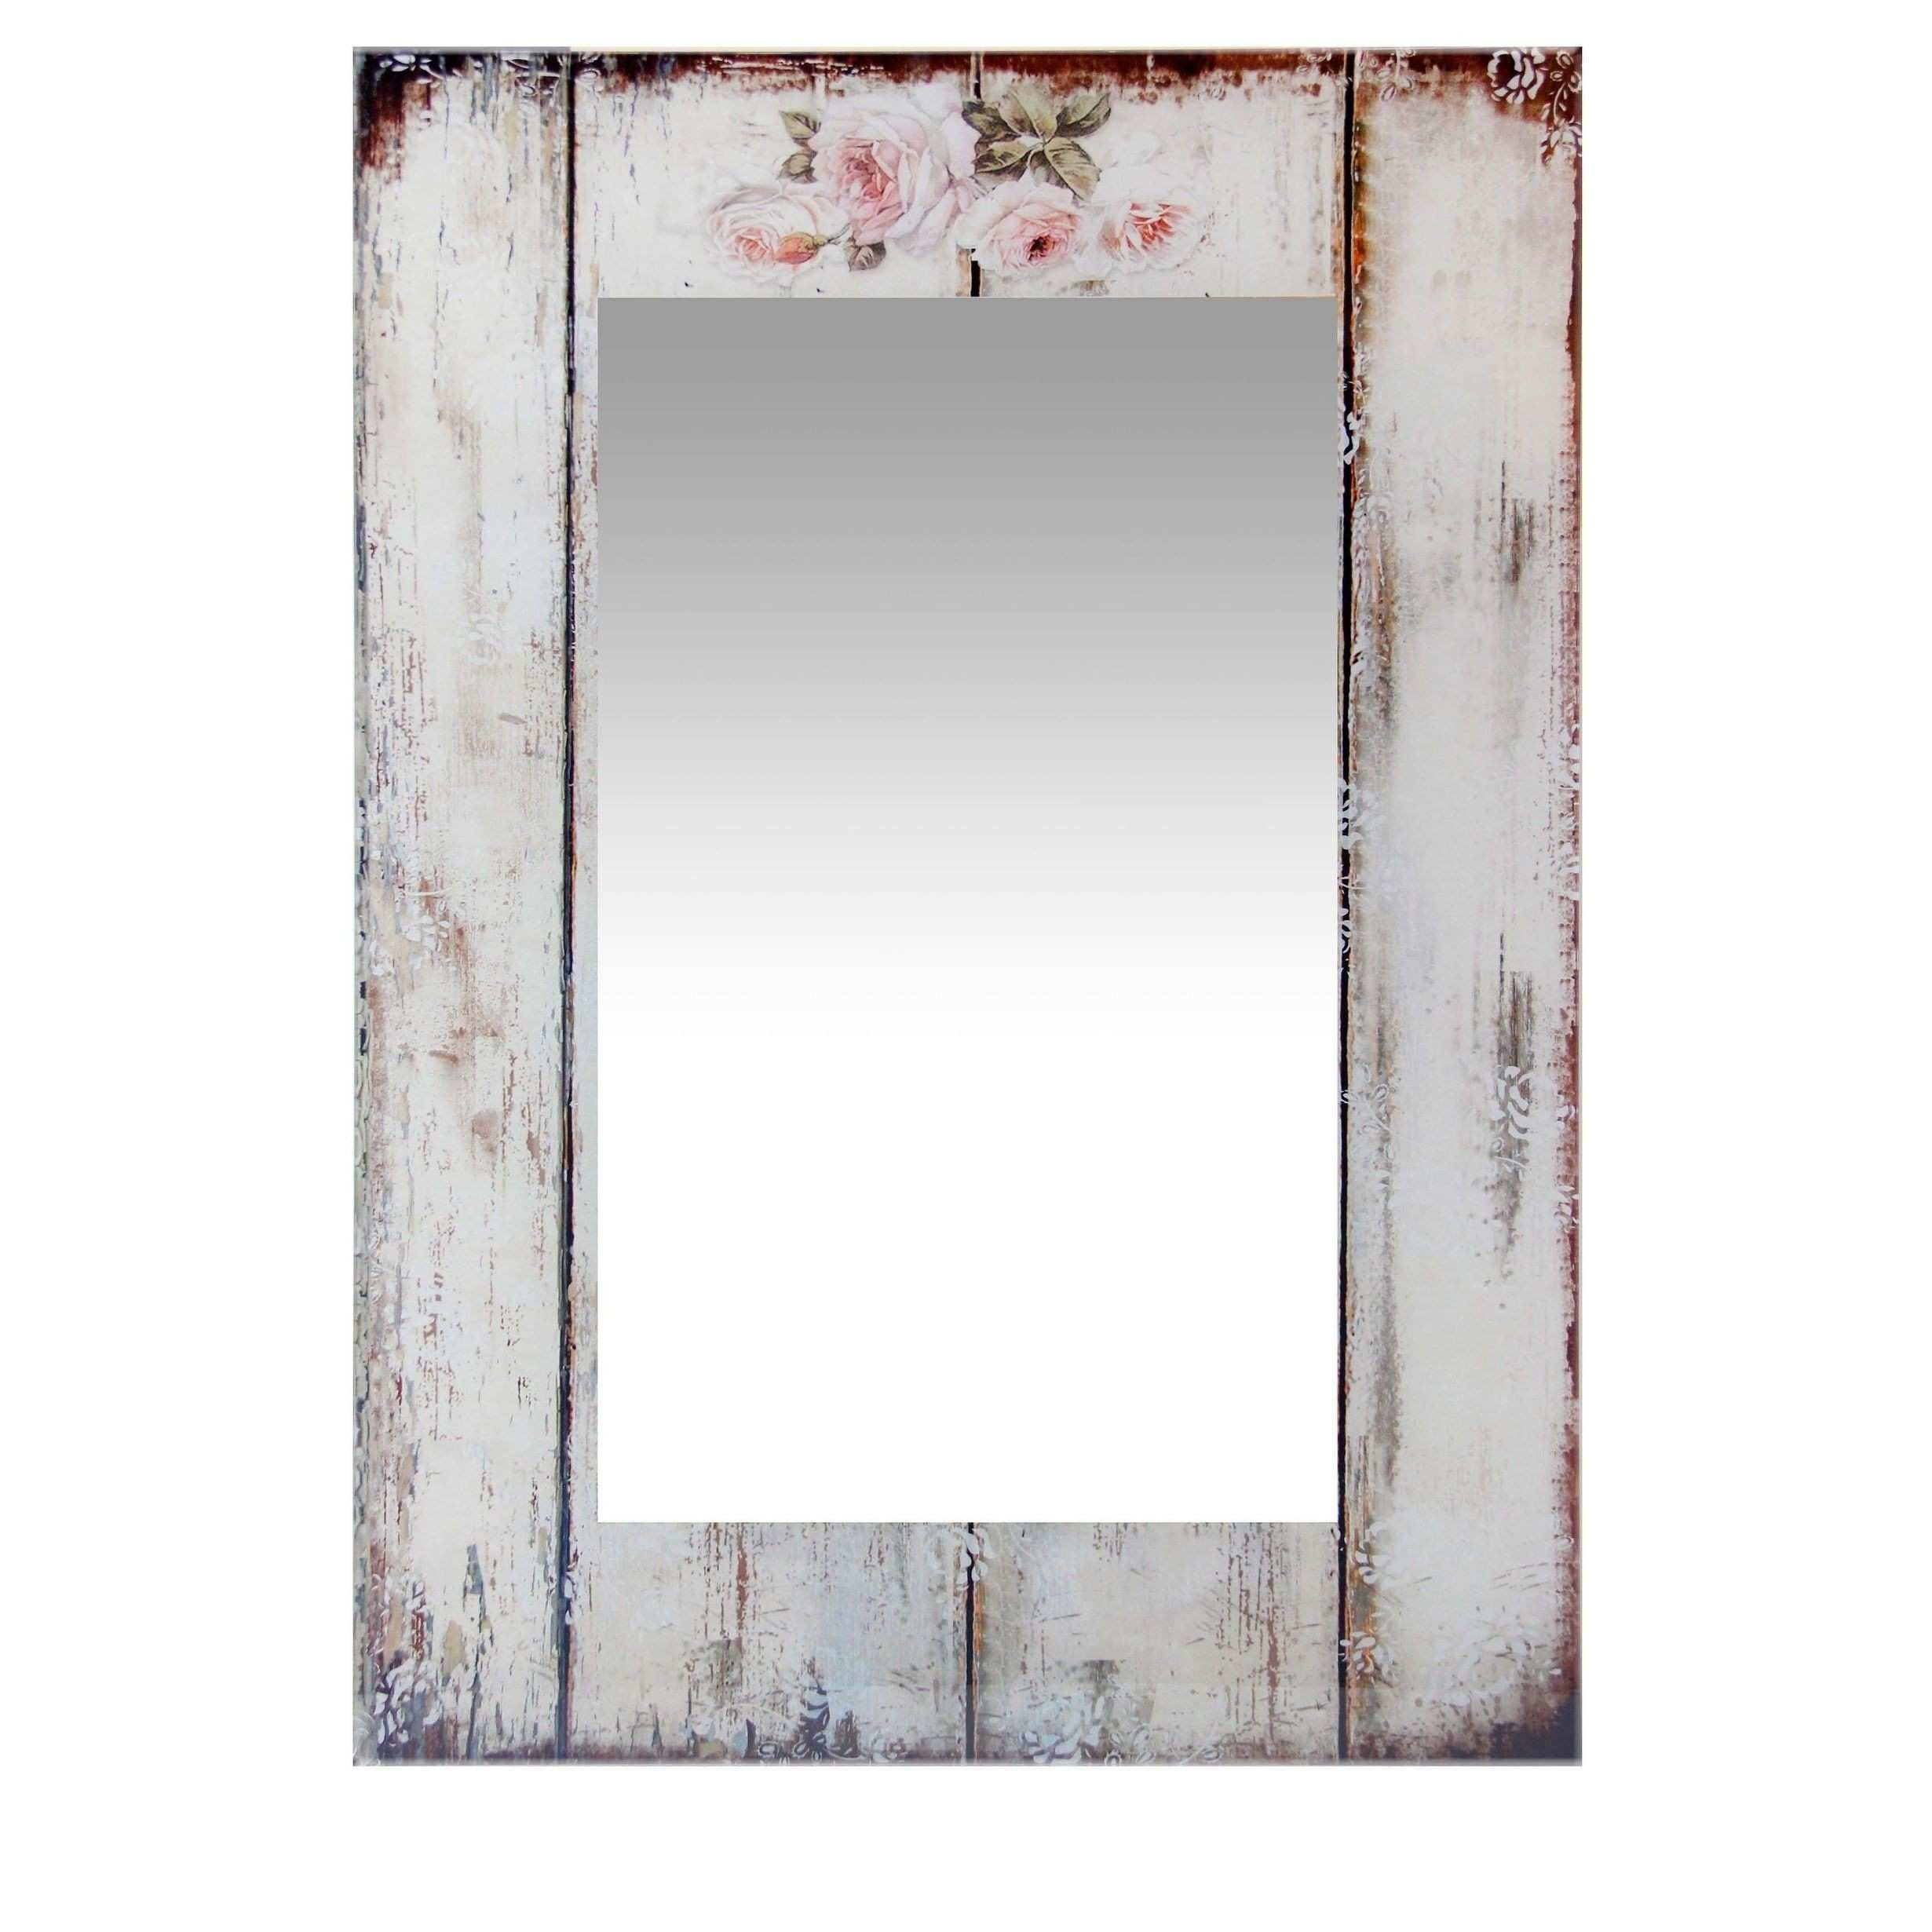 27 5 Inch Wall Mirror Shabby Chic by Infinity Instruments